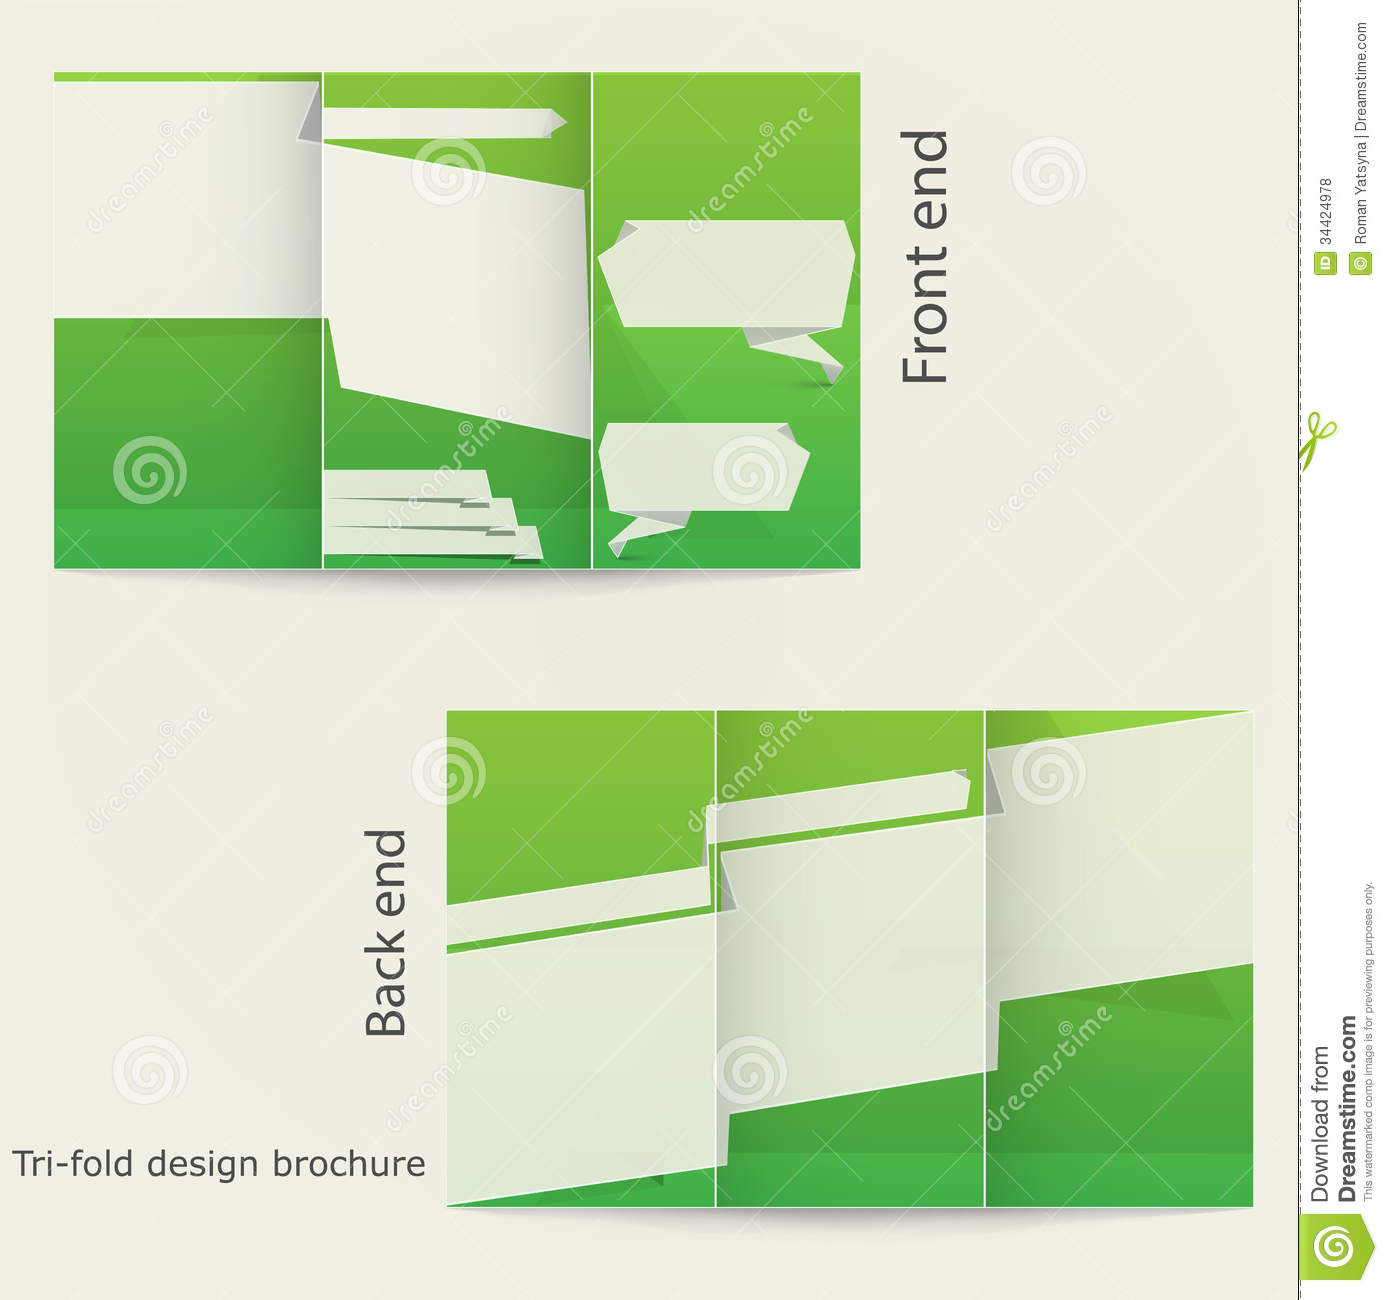 12 tri fold brochure template design images tri fold for Free templates for brochures tri fold